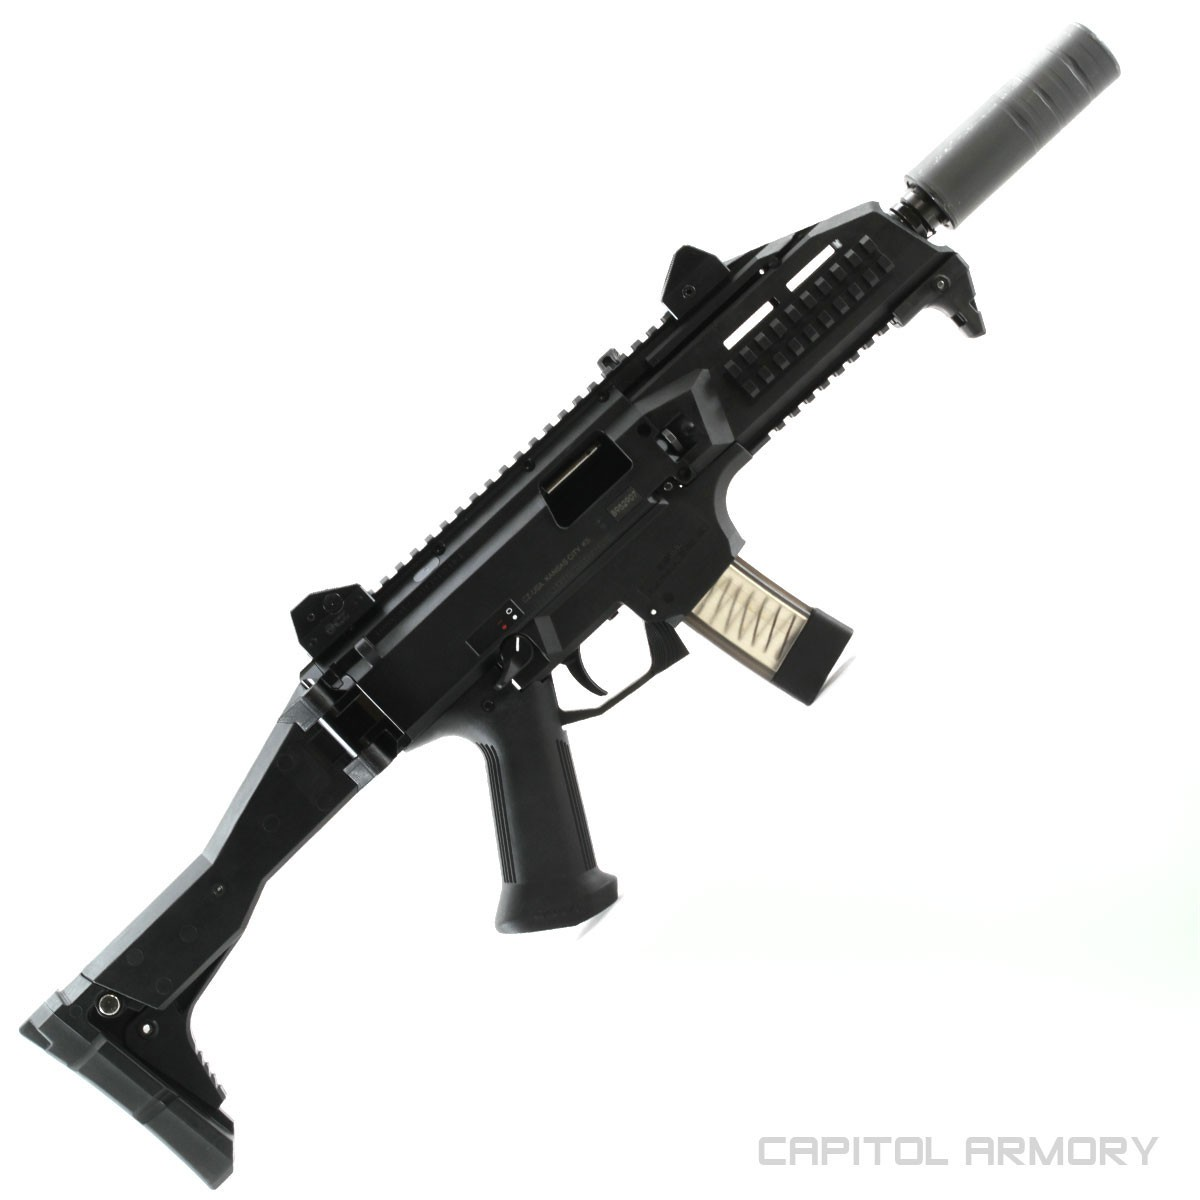 Action Auto Parts >> CZ SCORPION EVO 9MM SBR - Capitol Armory